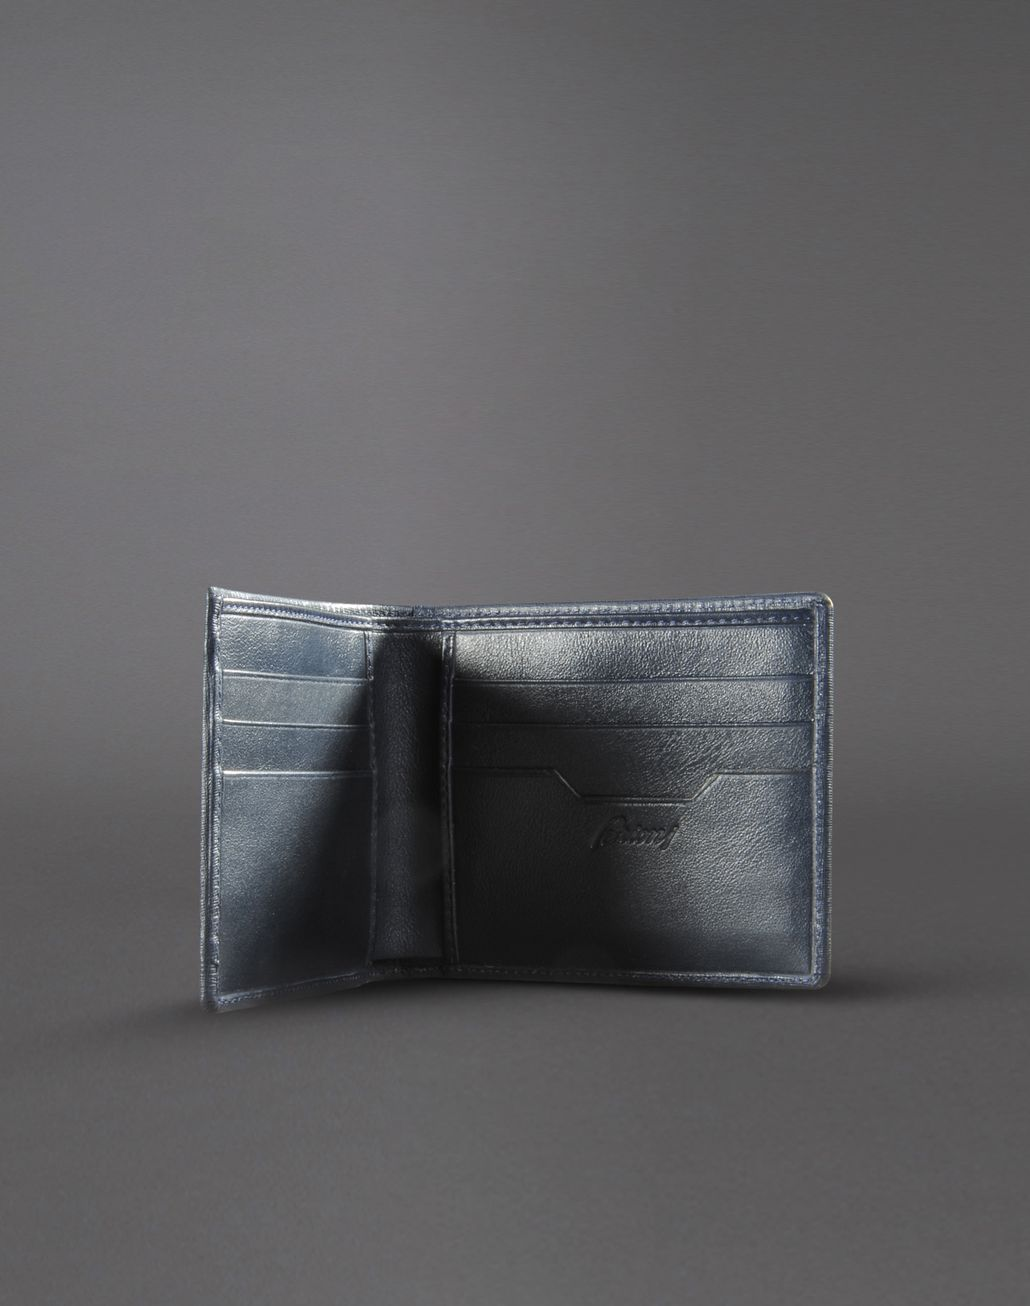 BRIONI CLASSIC SMALL LEATHER GOOD   Leather Goods U d